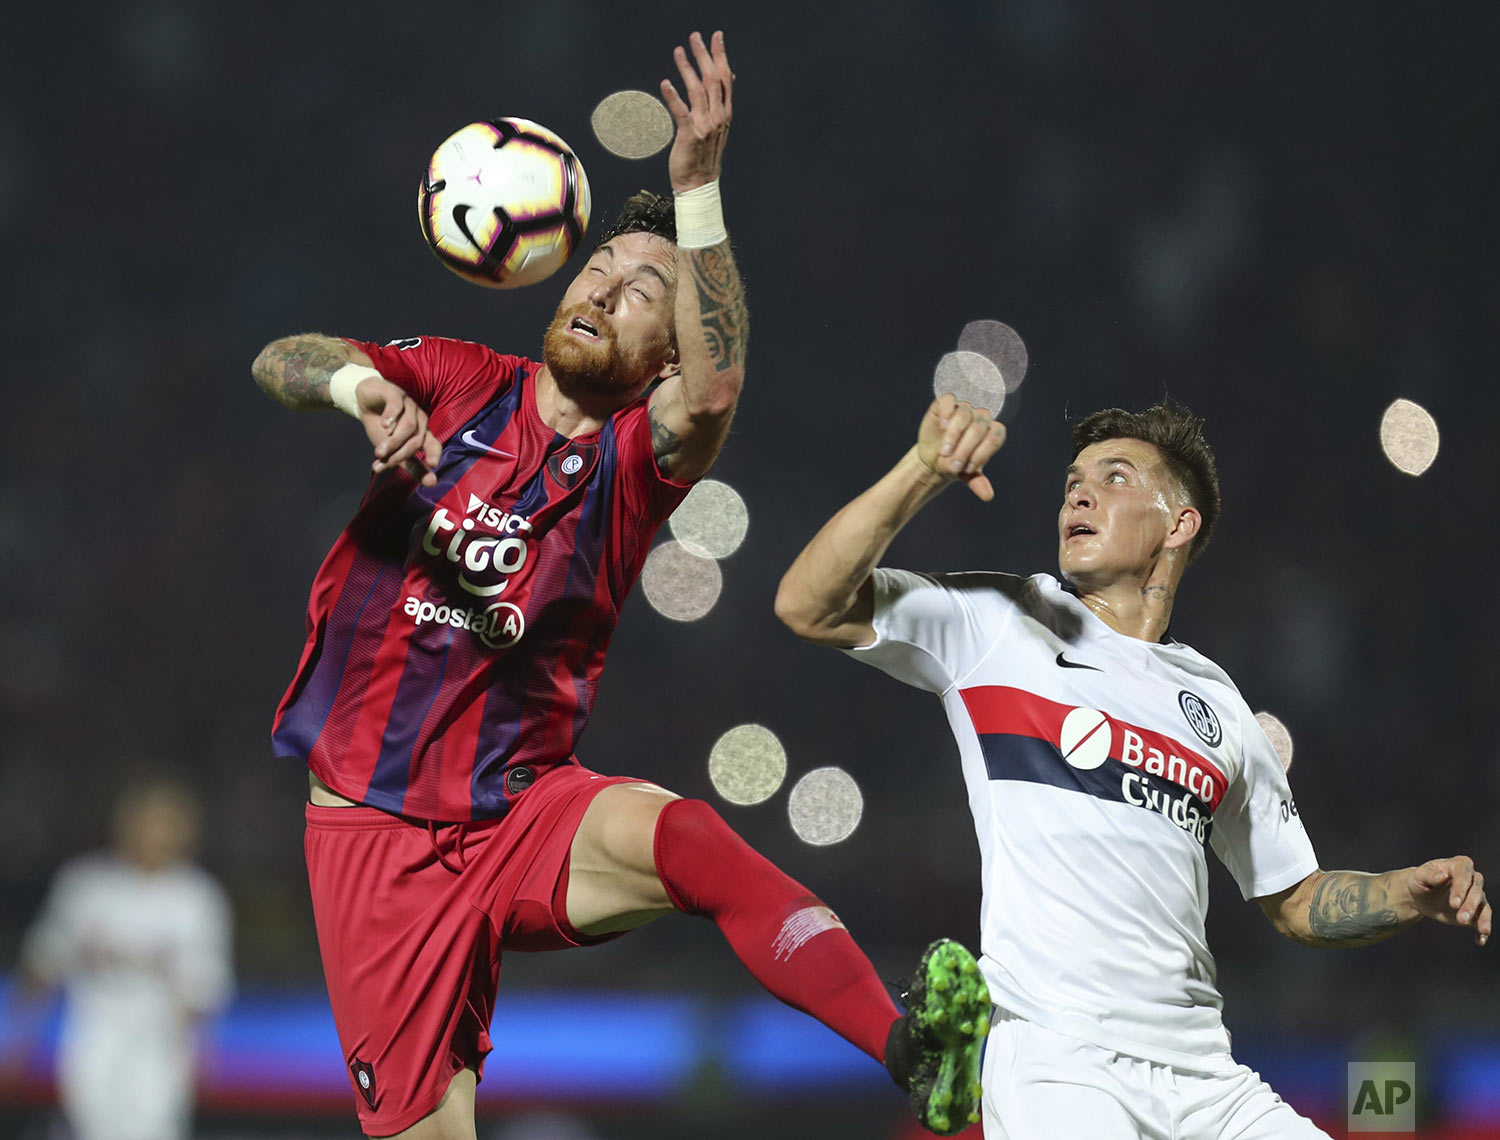 Gaston Reniero of Argentina's San Lorenzo, right, fights for the ball with Fernando Amorebieta of Paraguay's Cerro Porteno during a Copa Libertadores soccer game in Asuncion, Paraguay, Wednesday, July 31, 2019. (AP Photo/Jorge Saenz)